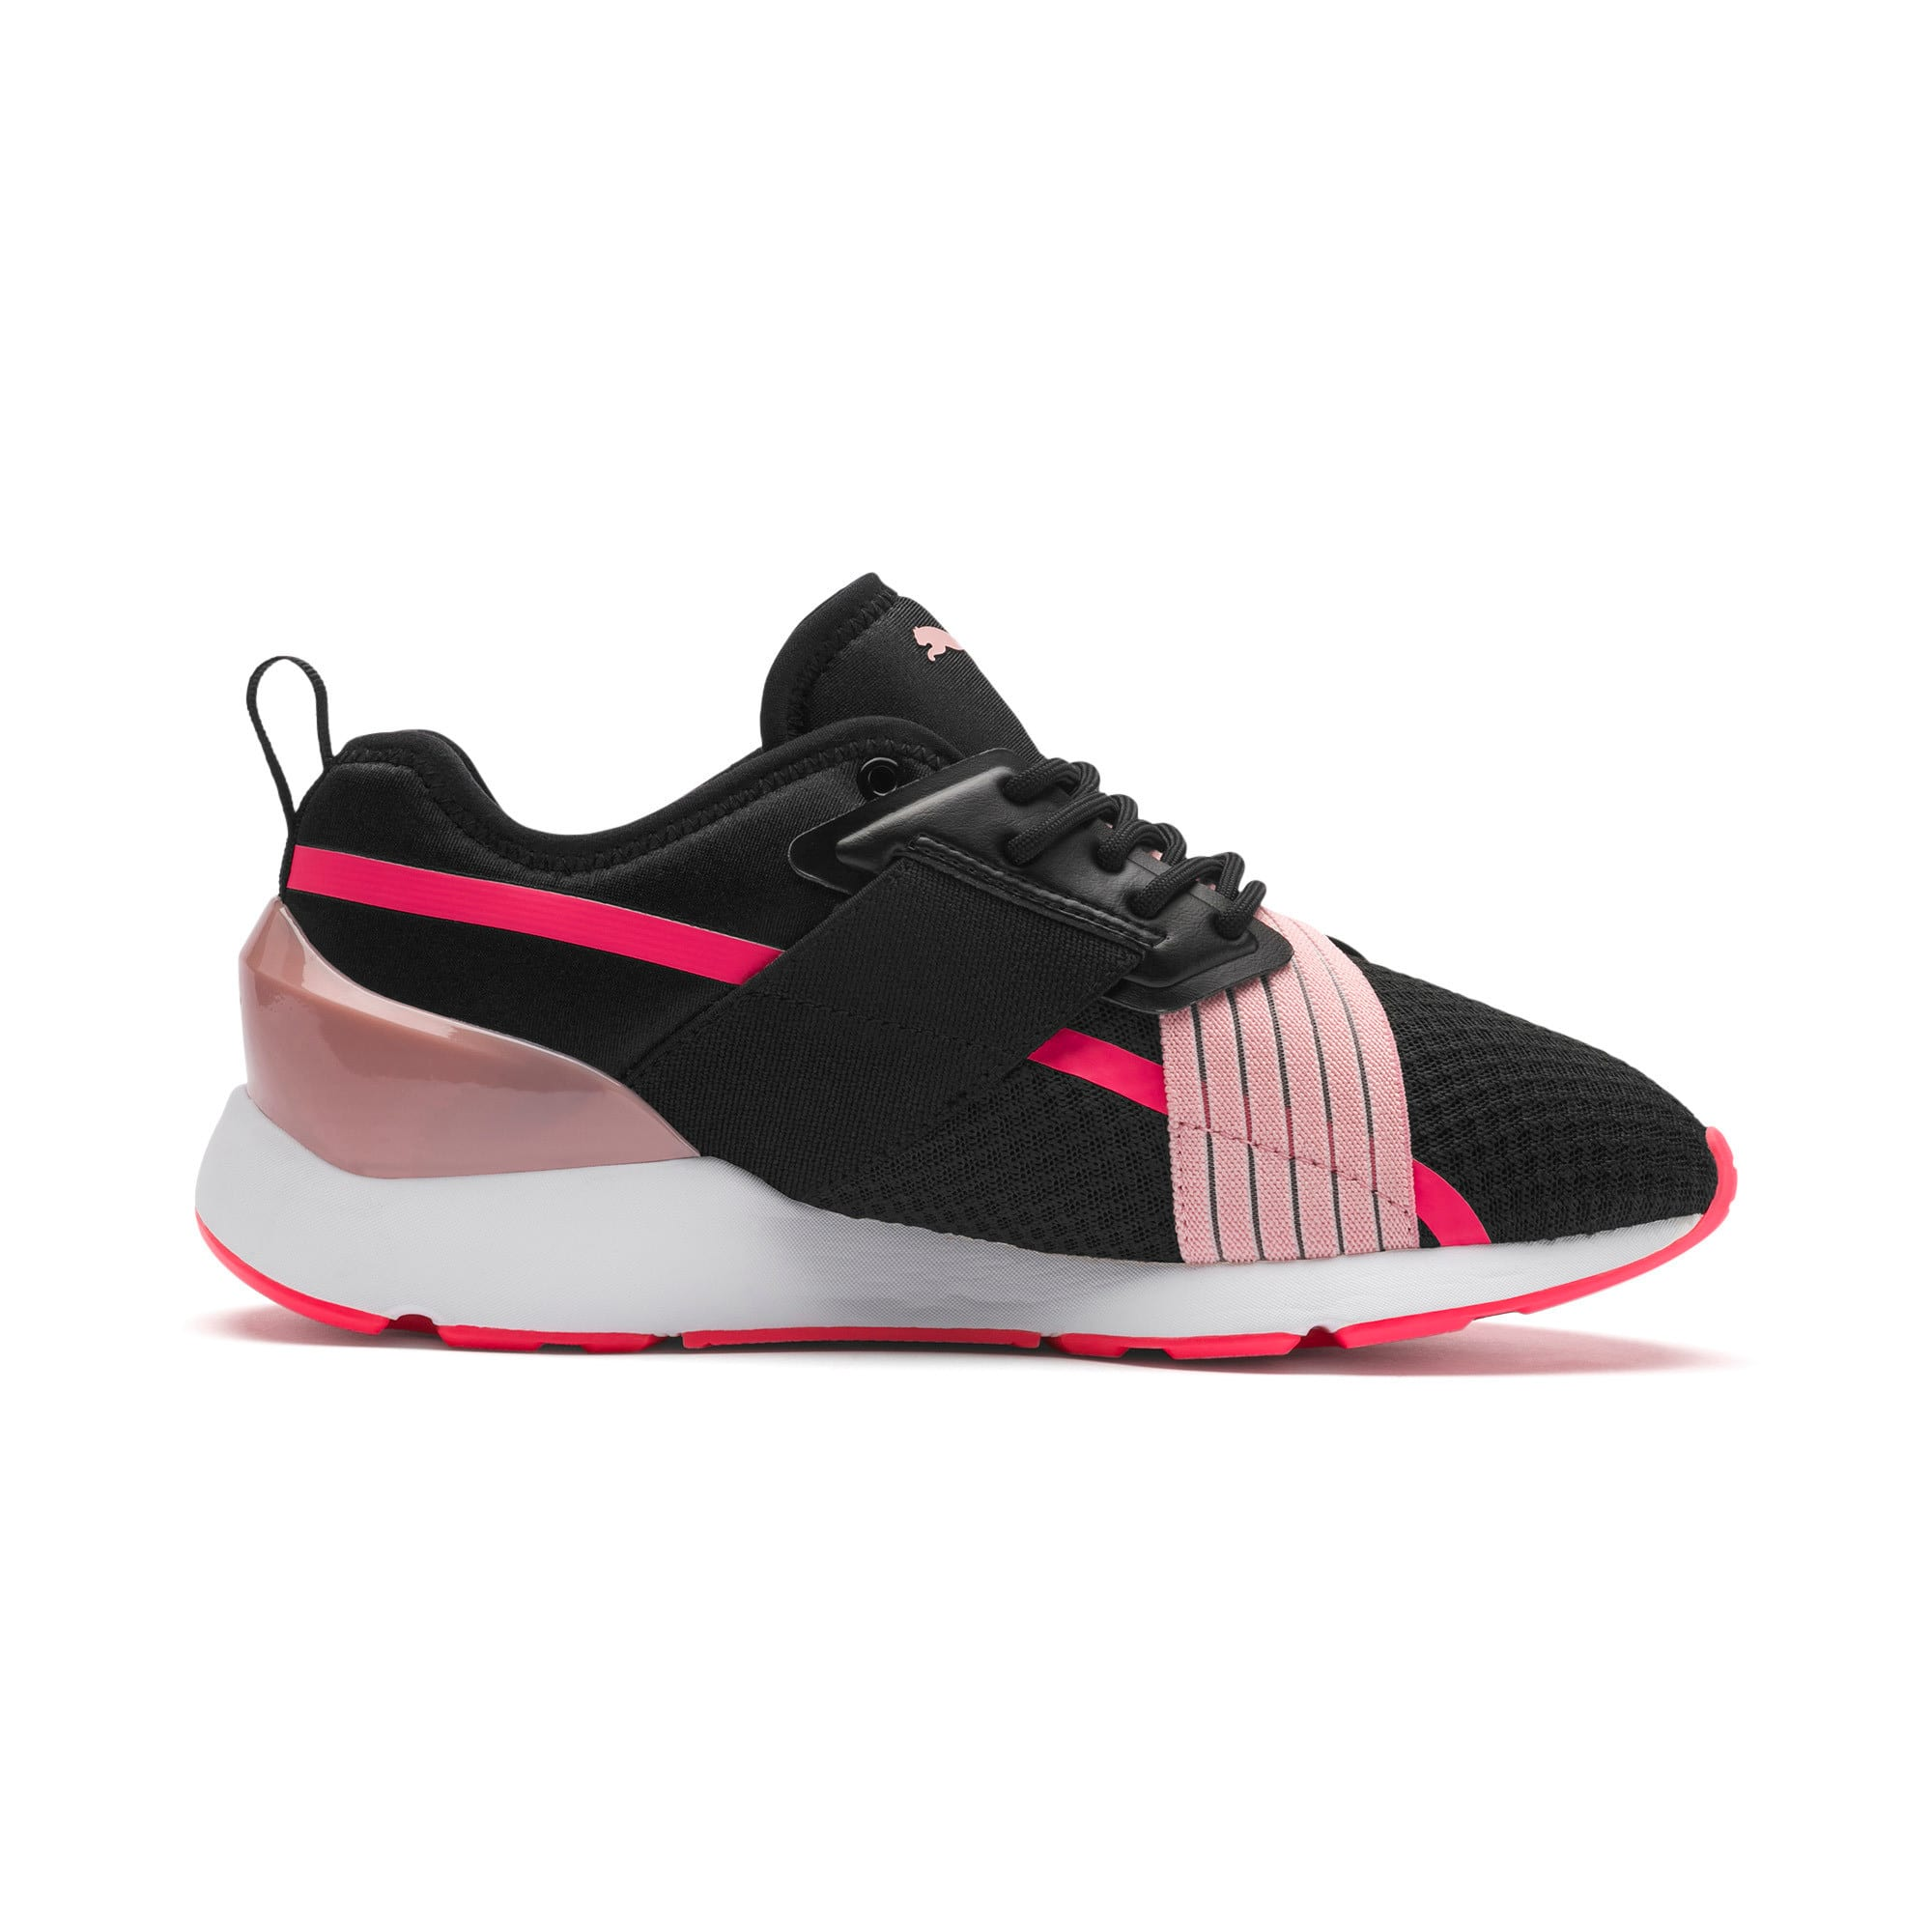 Thumbnail 6 of Muse X-2 Women's Sneakers, Puma Black-Bridal Rose, medium